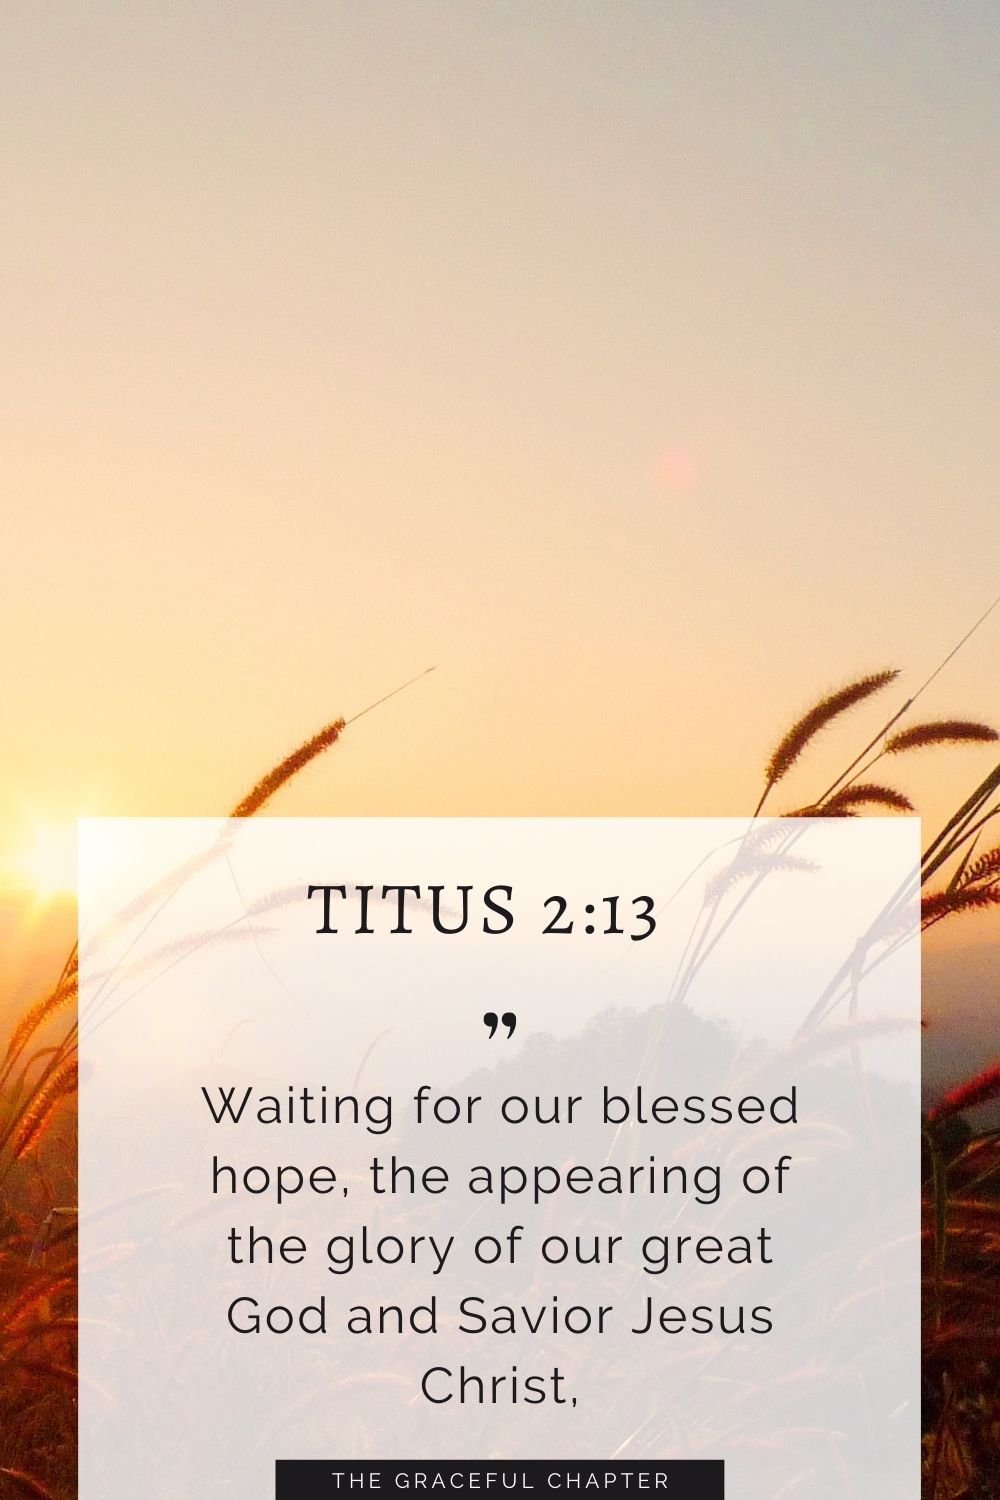 Waiting for our blessed hope, the appearing of the glory of our great God and Savior Jesus Christ, Titus 2:13